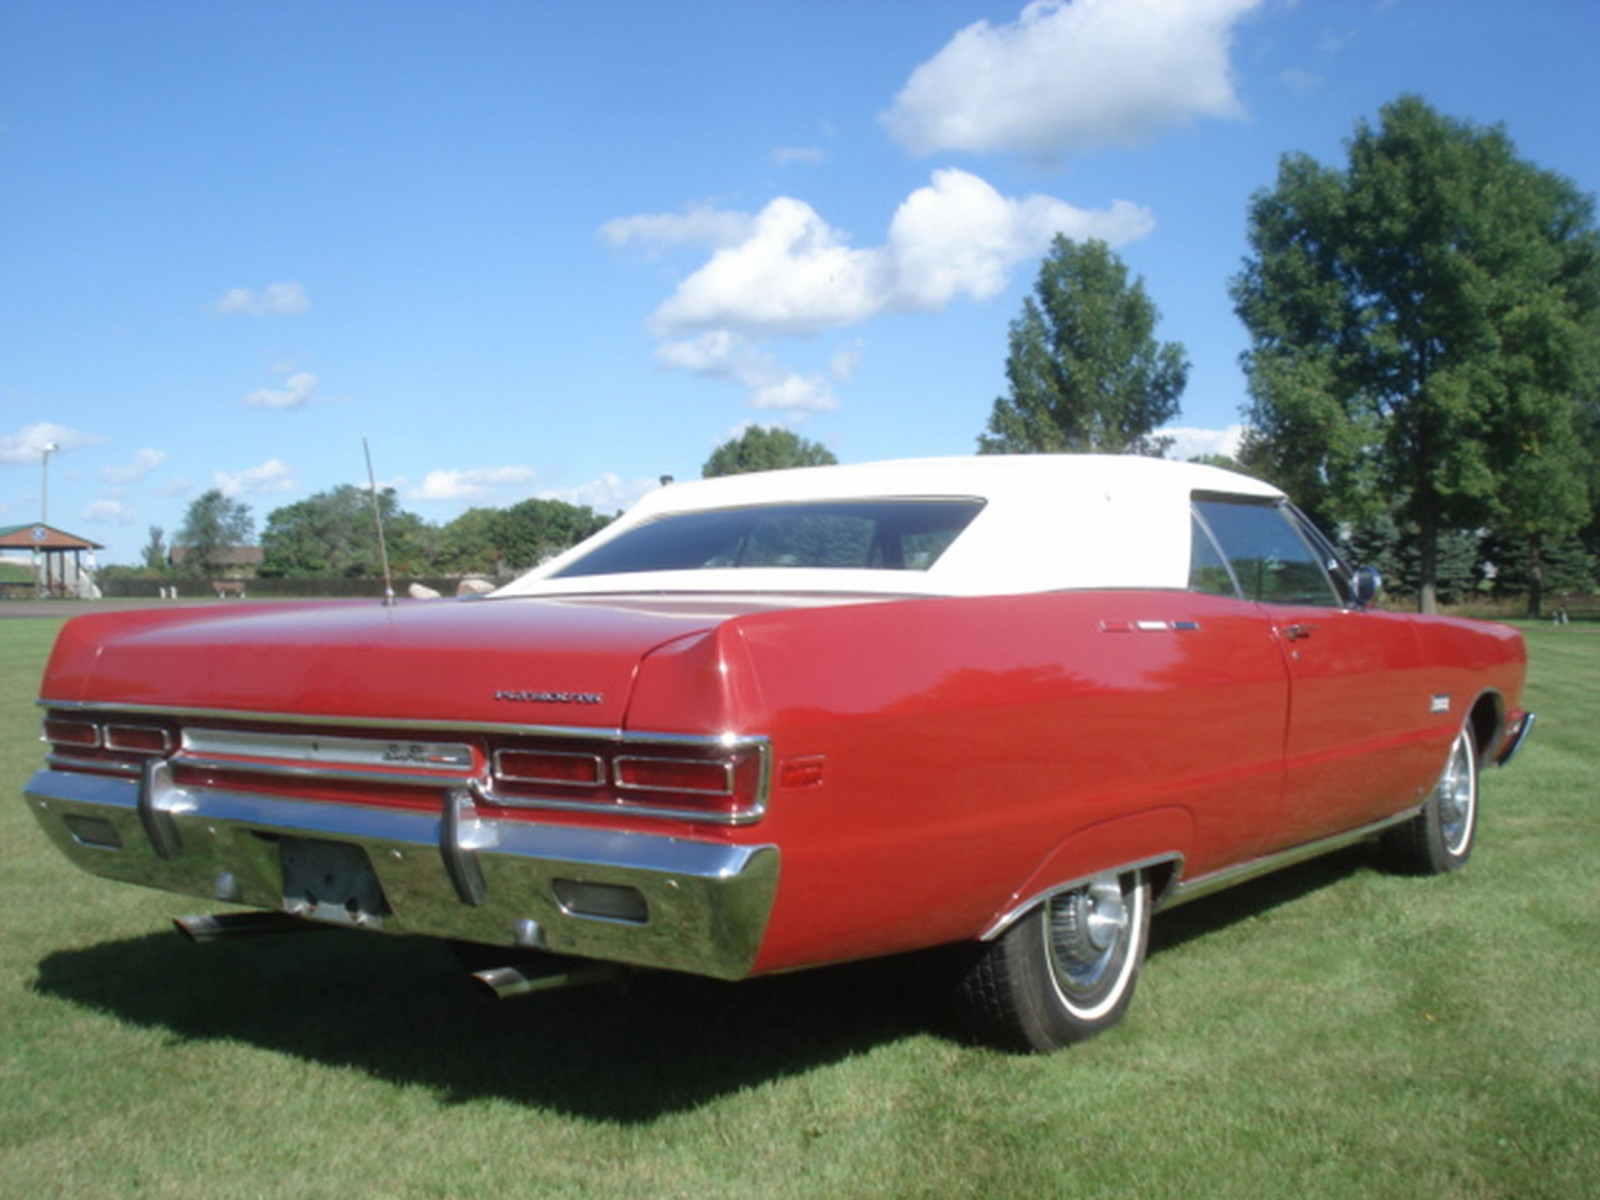 1969 Plymouth Sport Fury Convertible - Image 3